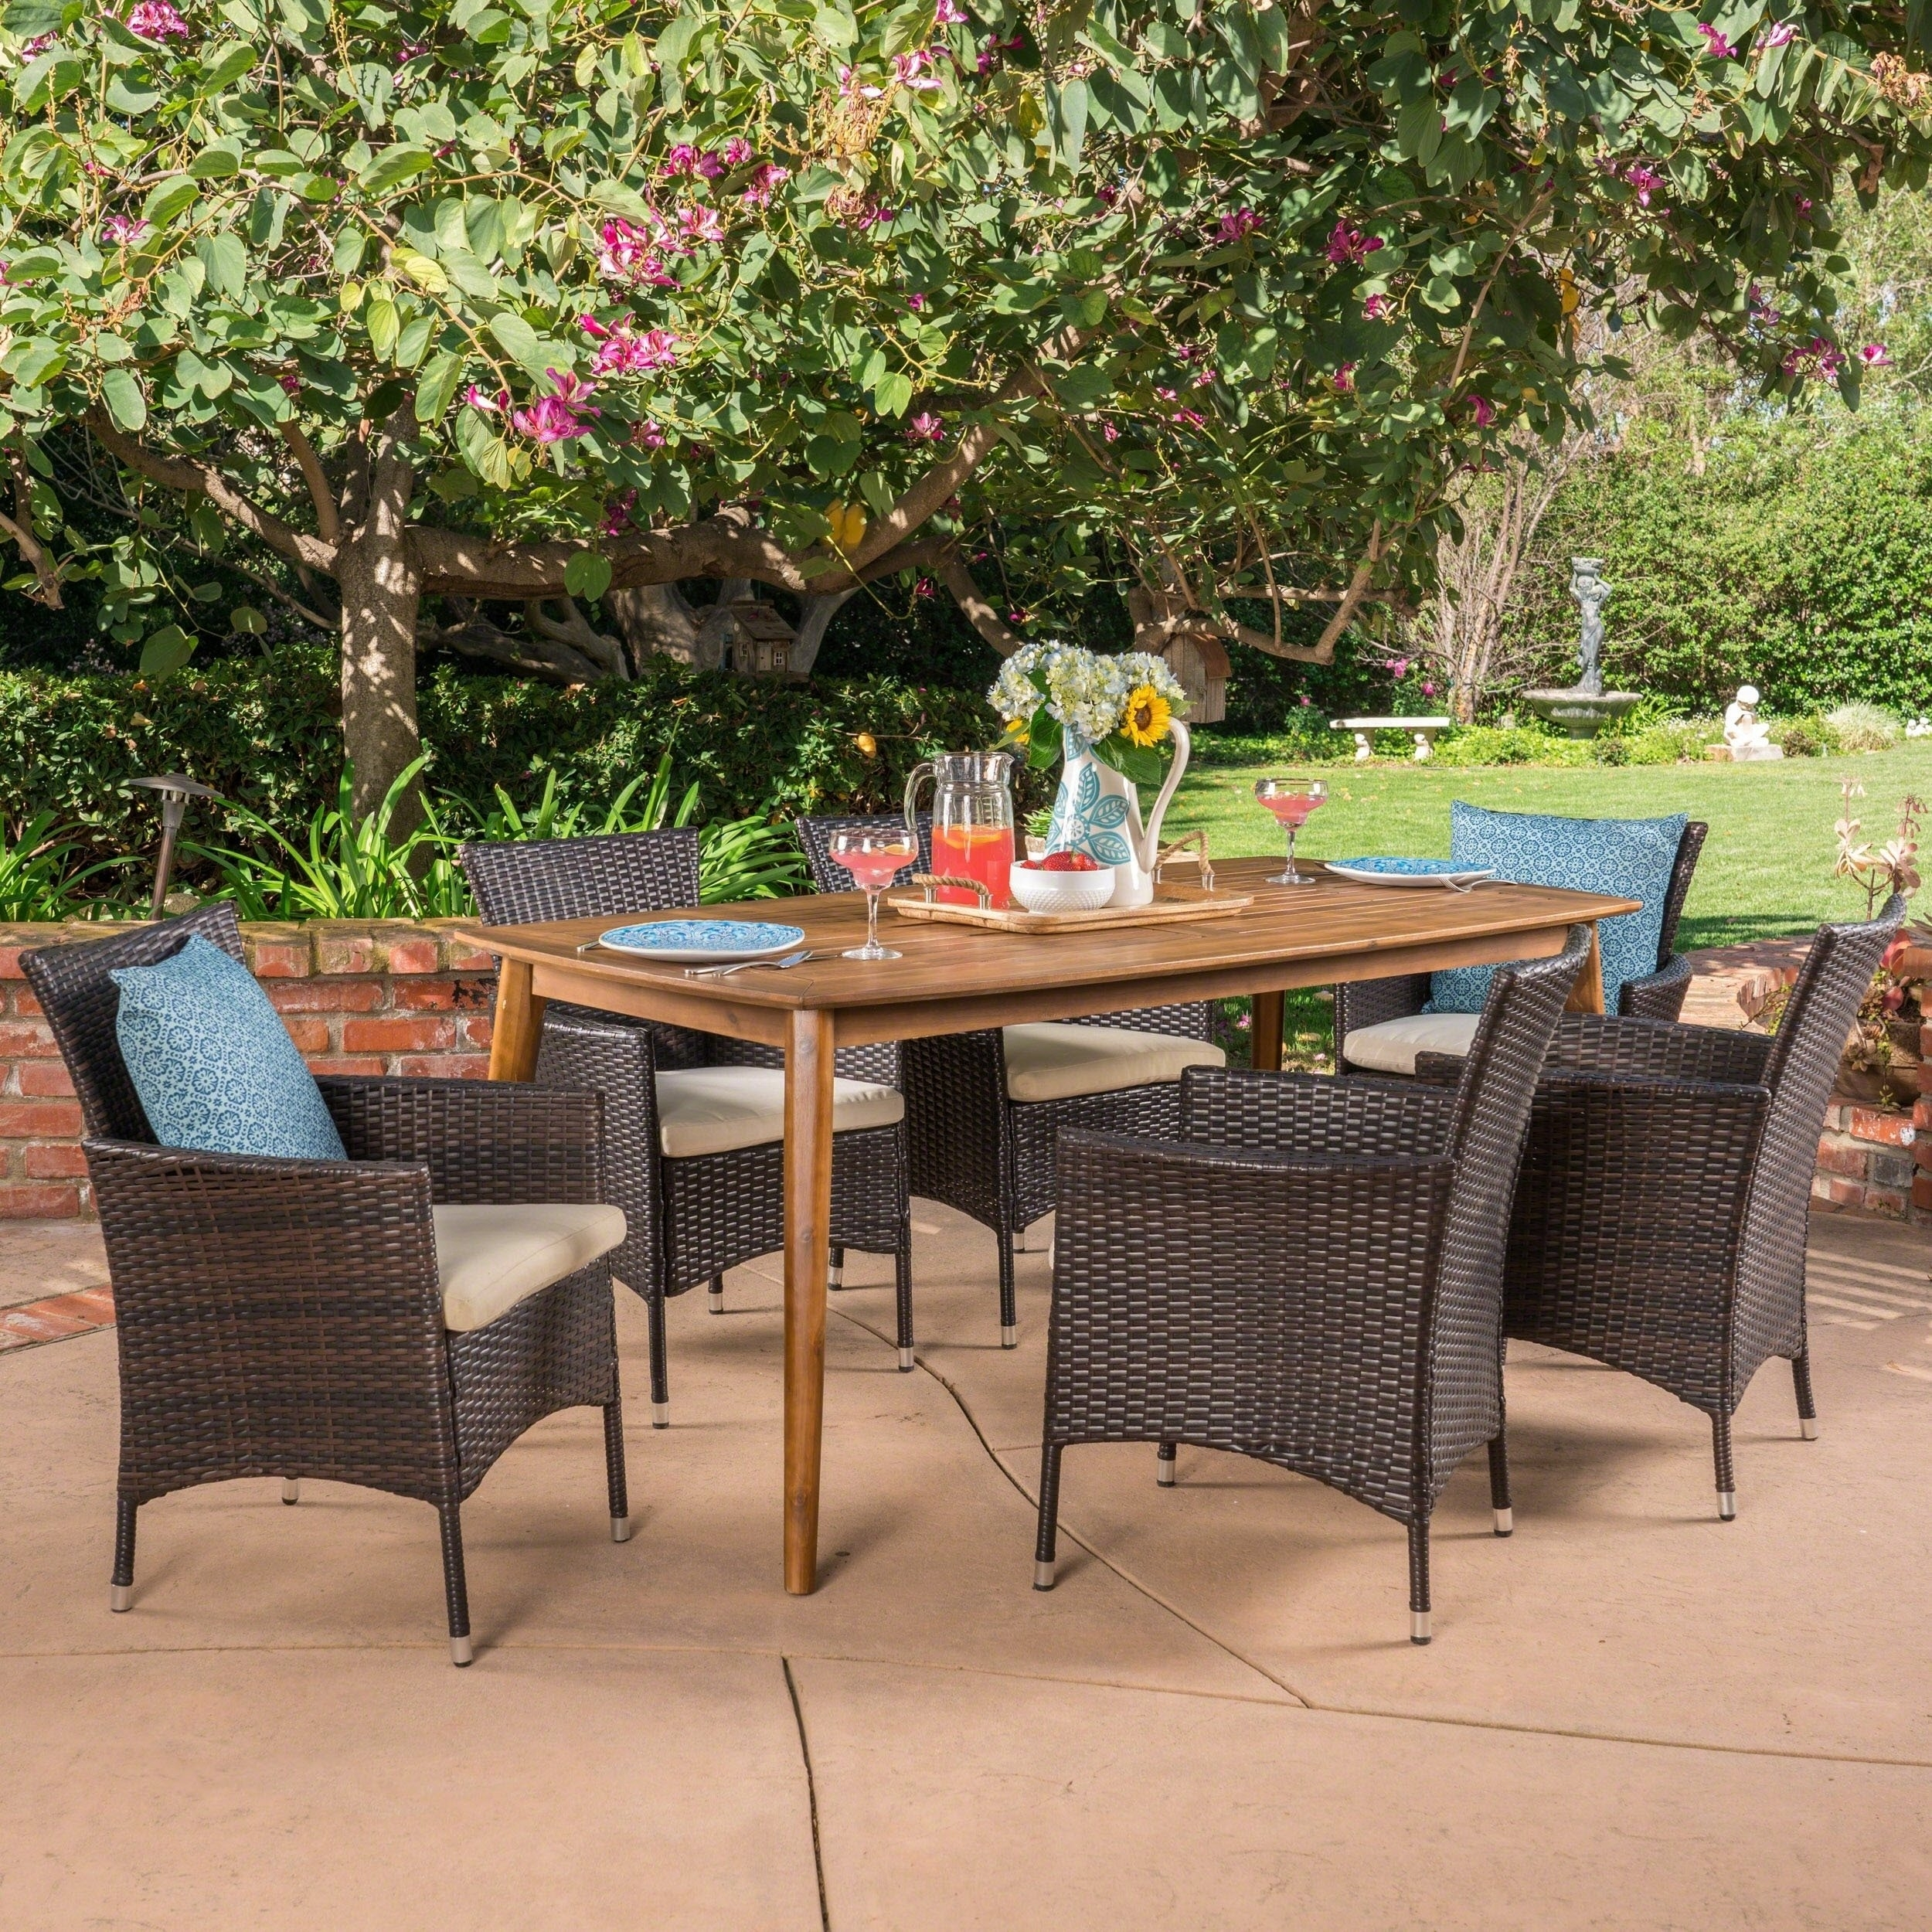 Shop Jaxon Outdoor 7 Piece Multibrown Pe Wicker Dining Set With For Most Up To Date Jaxon 6 Piece Rectangle Dining Sets With Bench & Uph Chairs (Image 20 of 20)